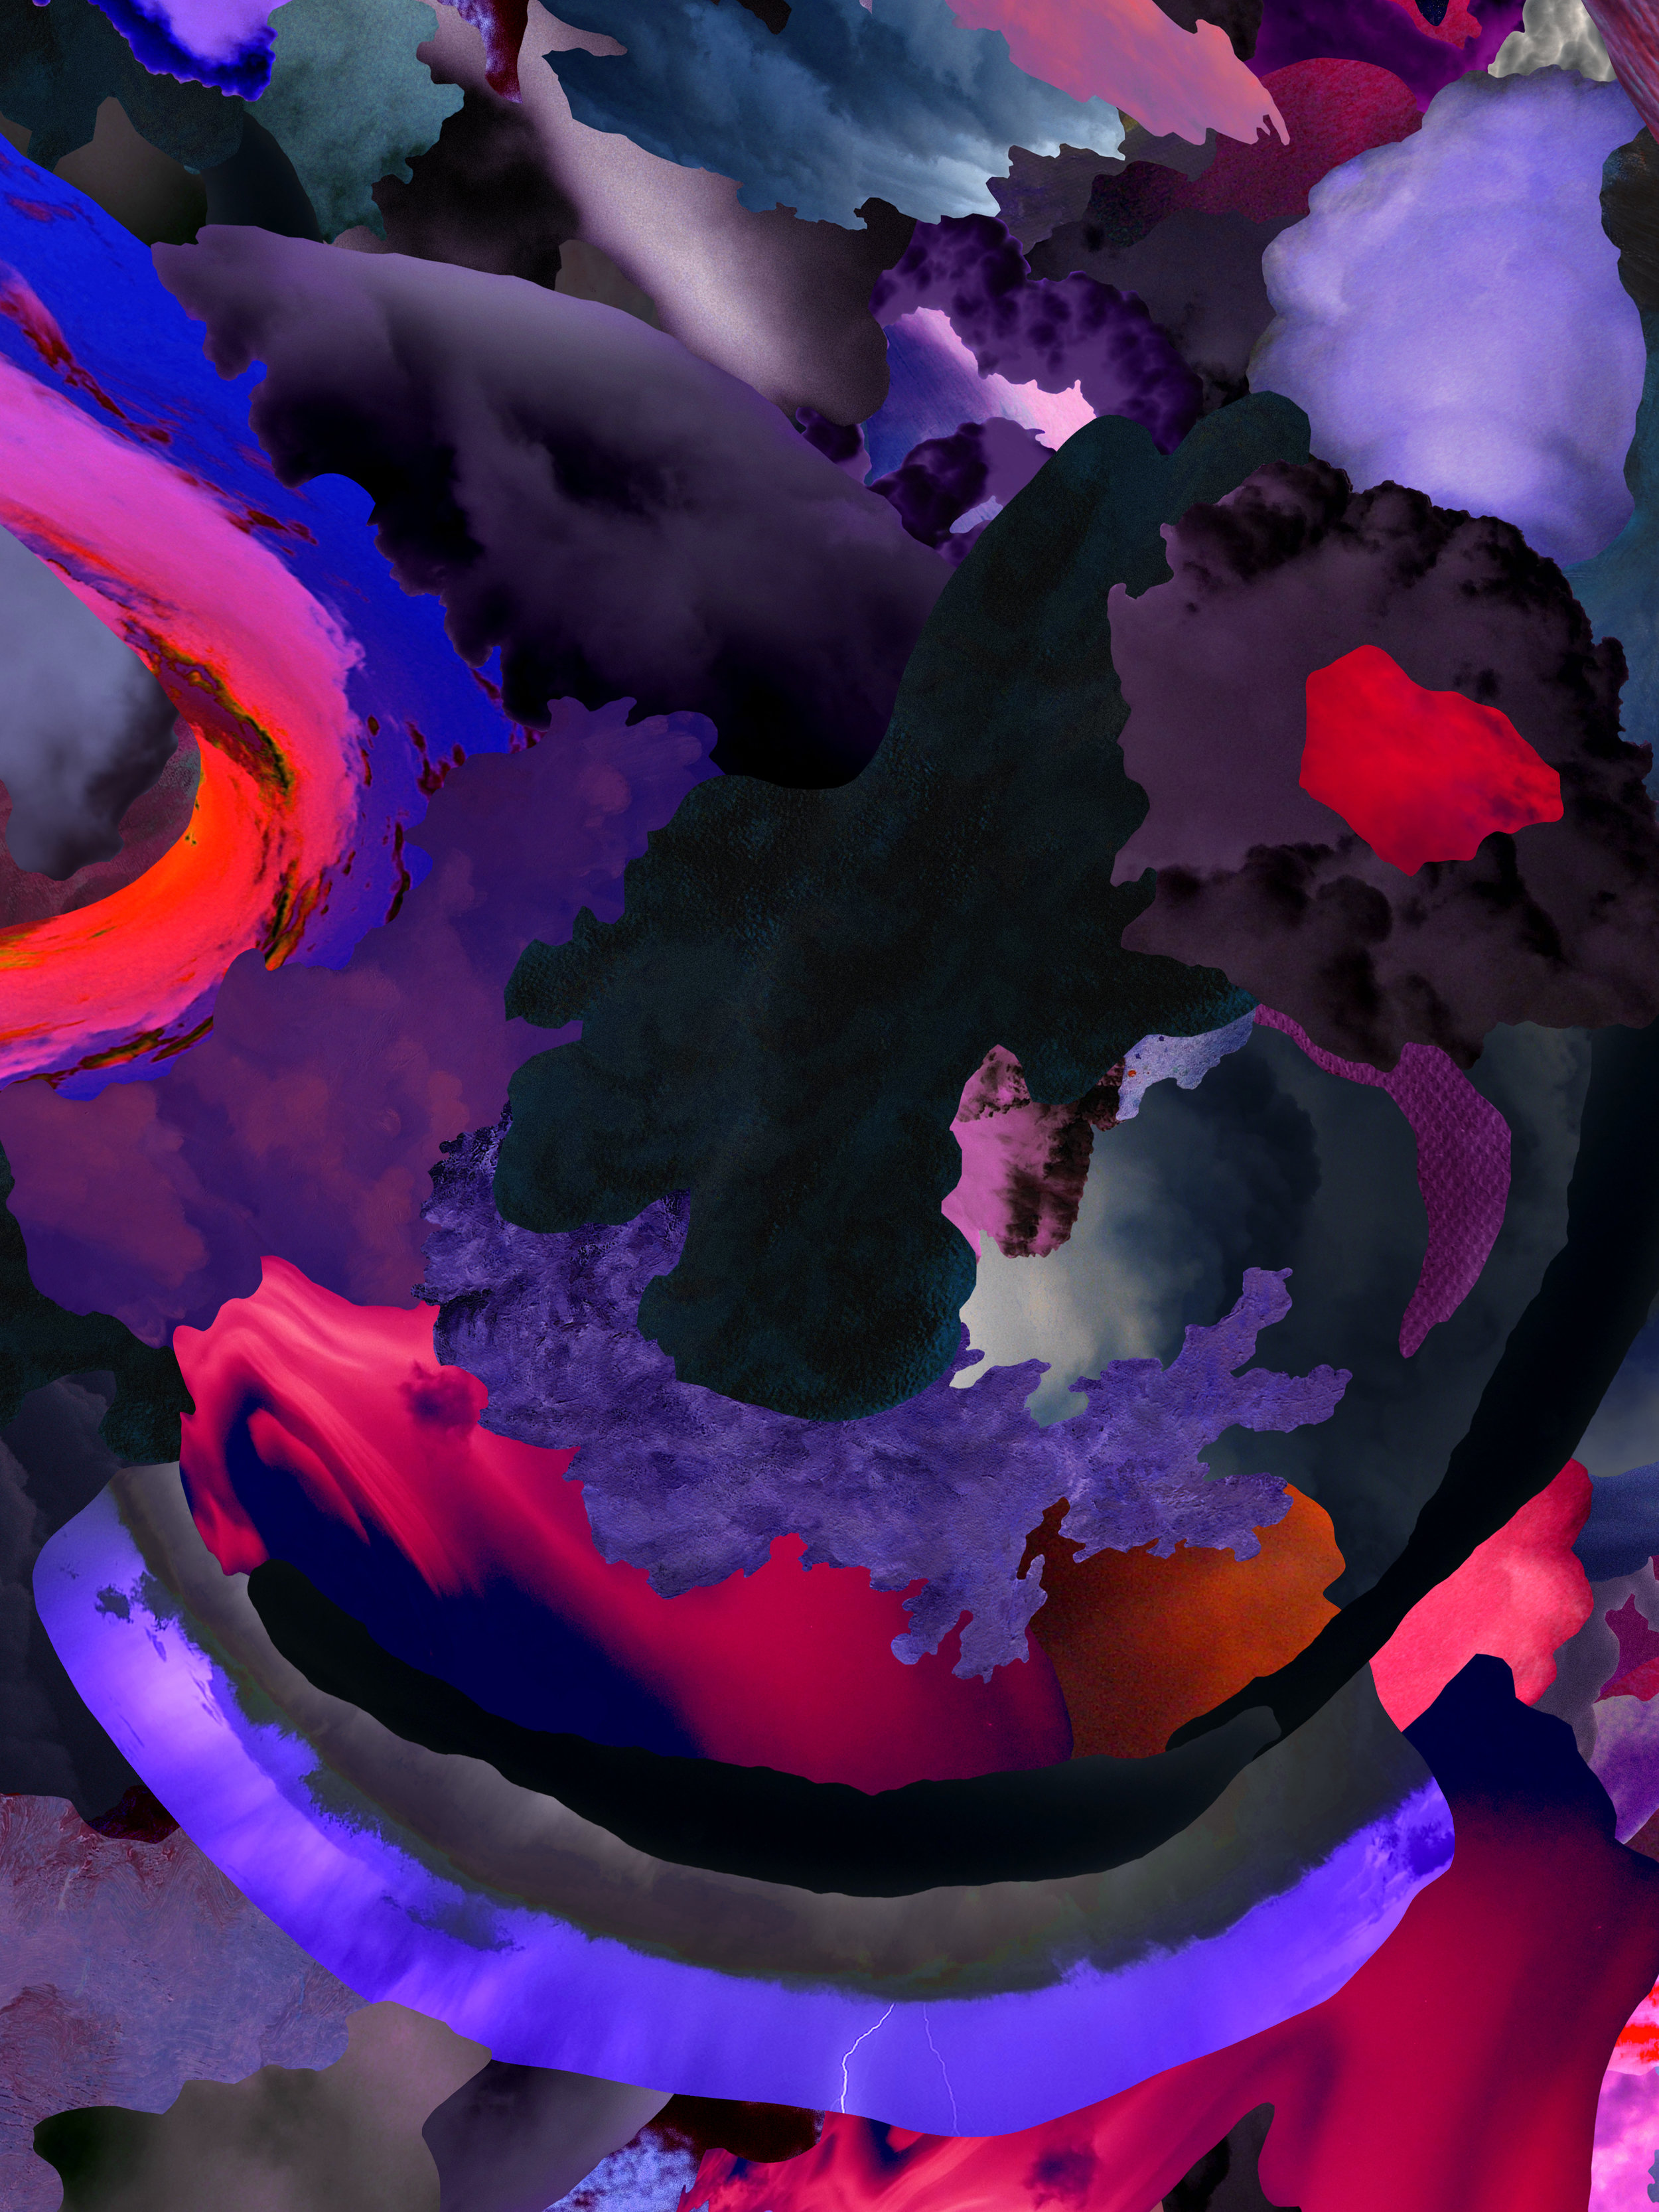 Case Simmons, Clouds Z, Pigment Print, Digital Collage, Digital Art, Photoshop Collage, Contemporary Collage, M+B Gallery, Los Angeles, Art, Fine Art